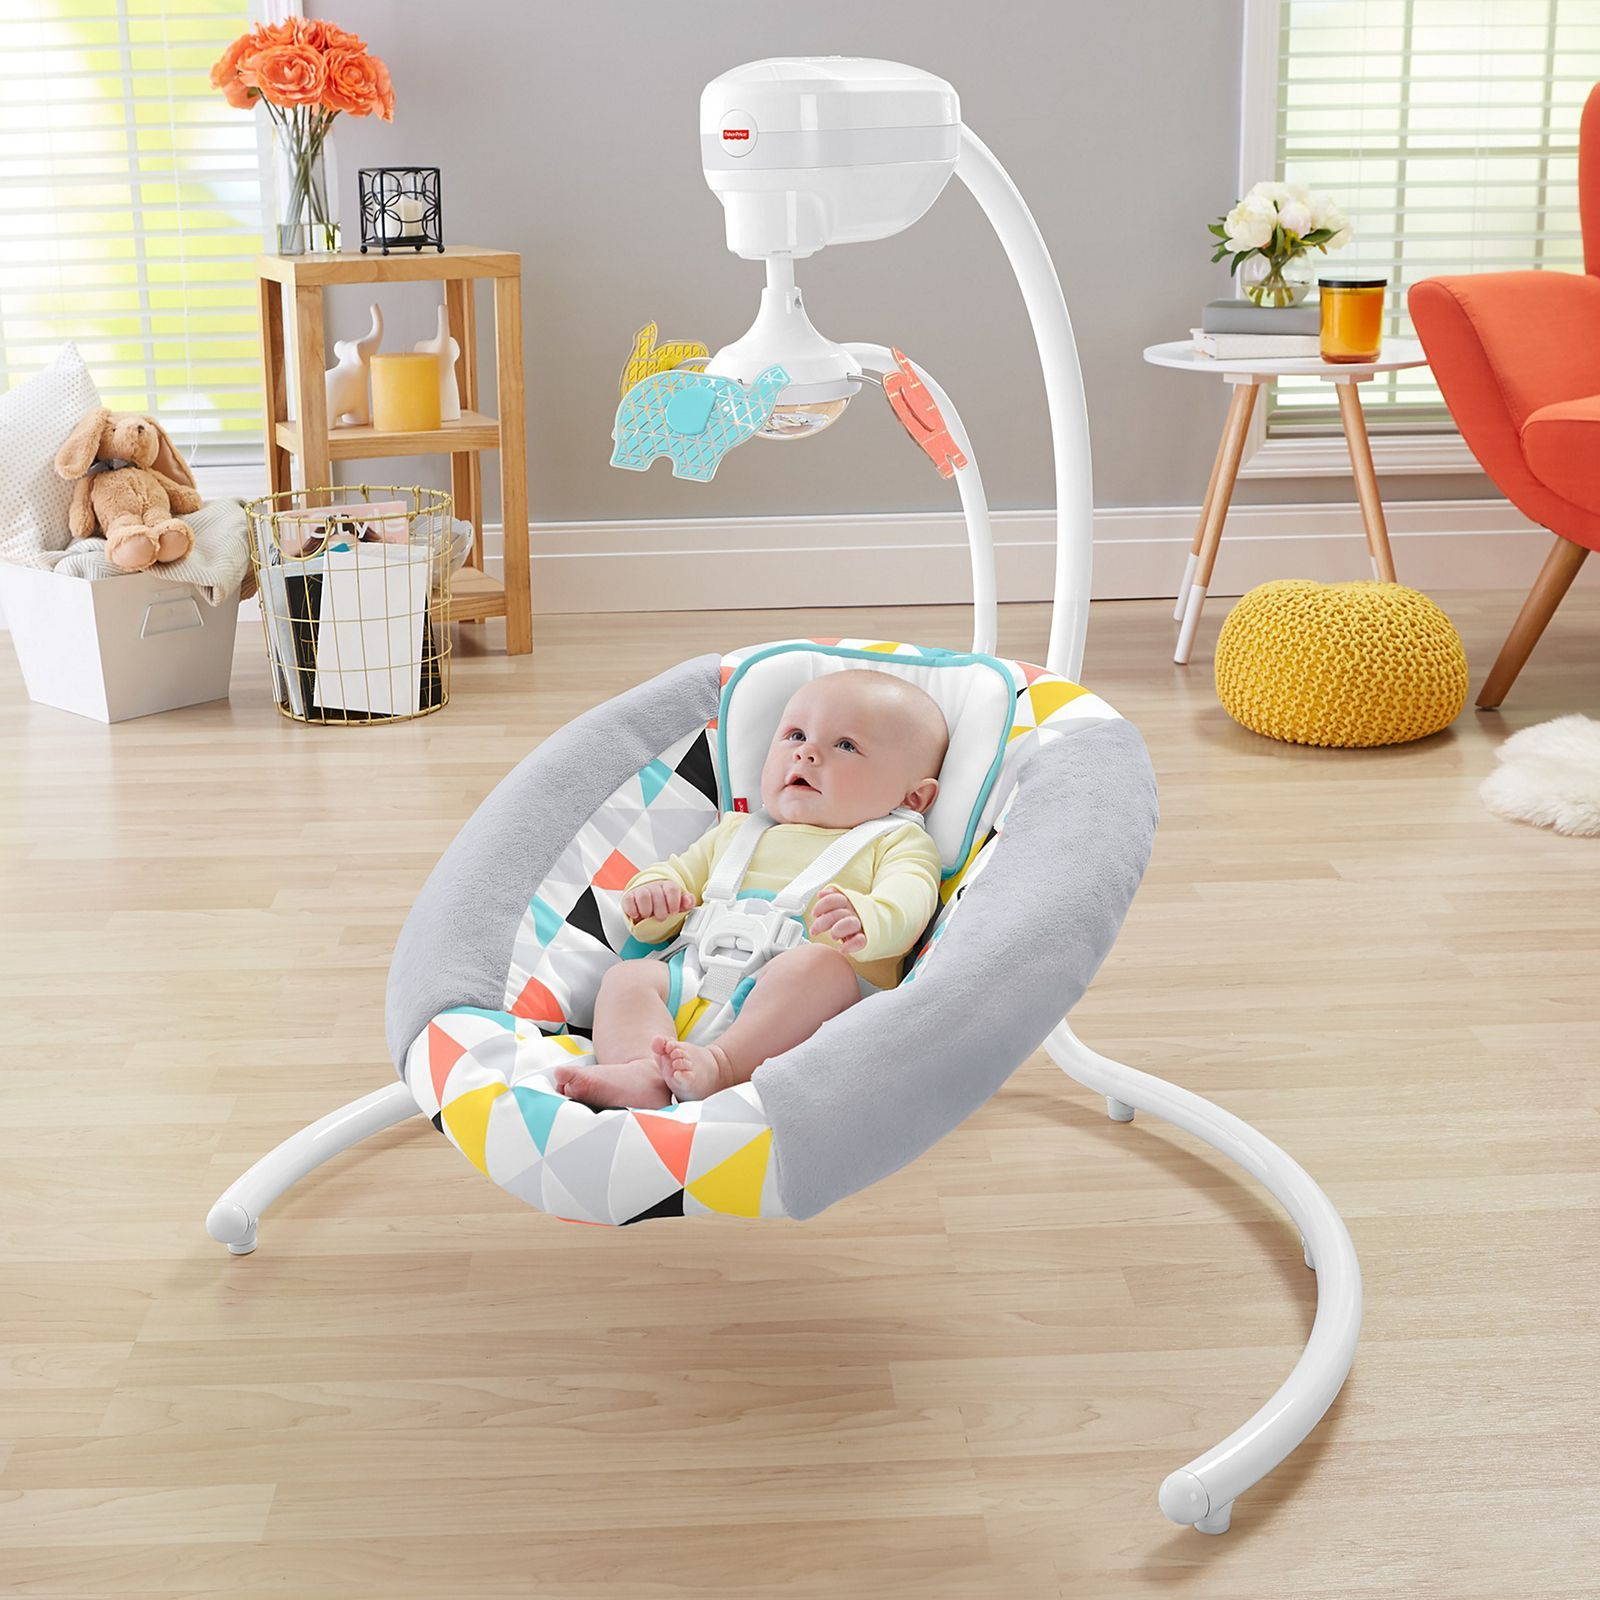 Check out the fisherprice revolve swing drf at the official